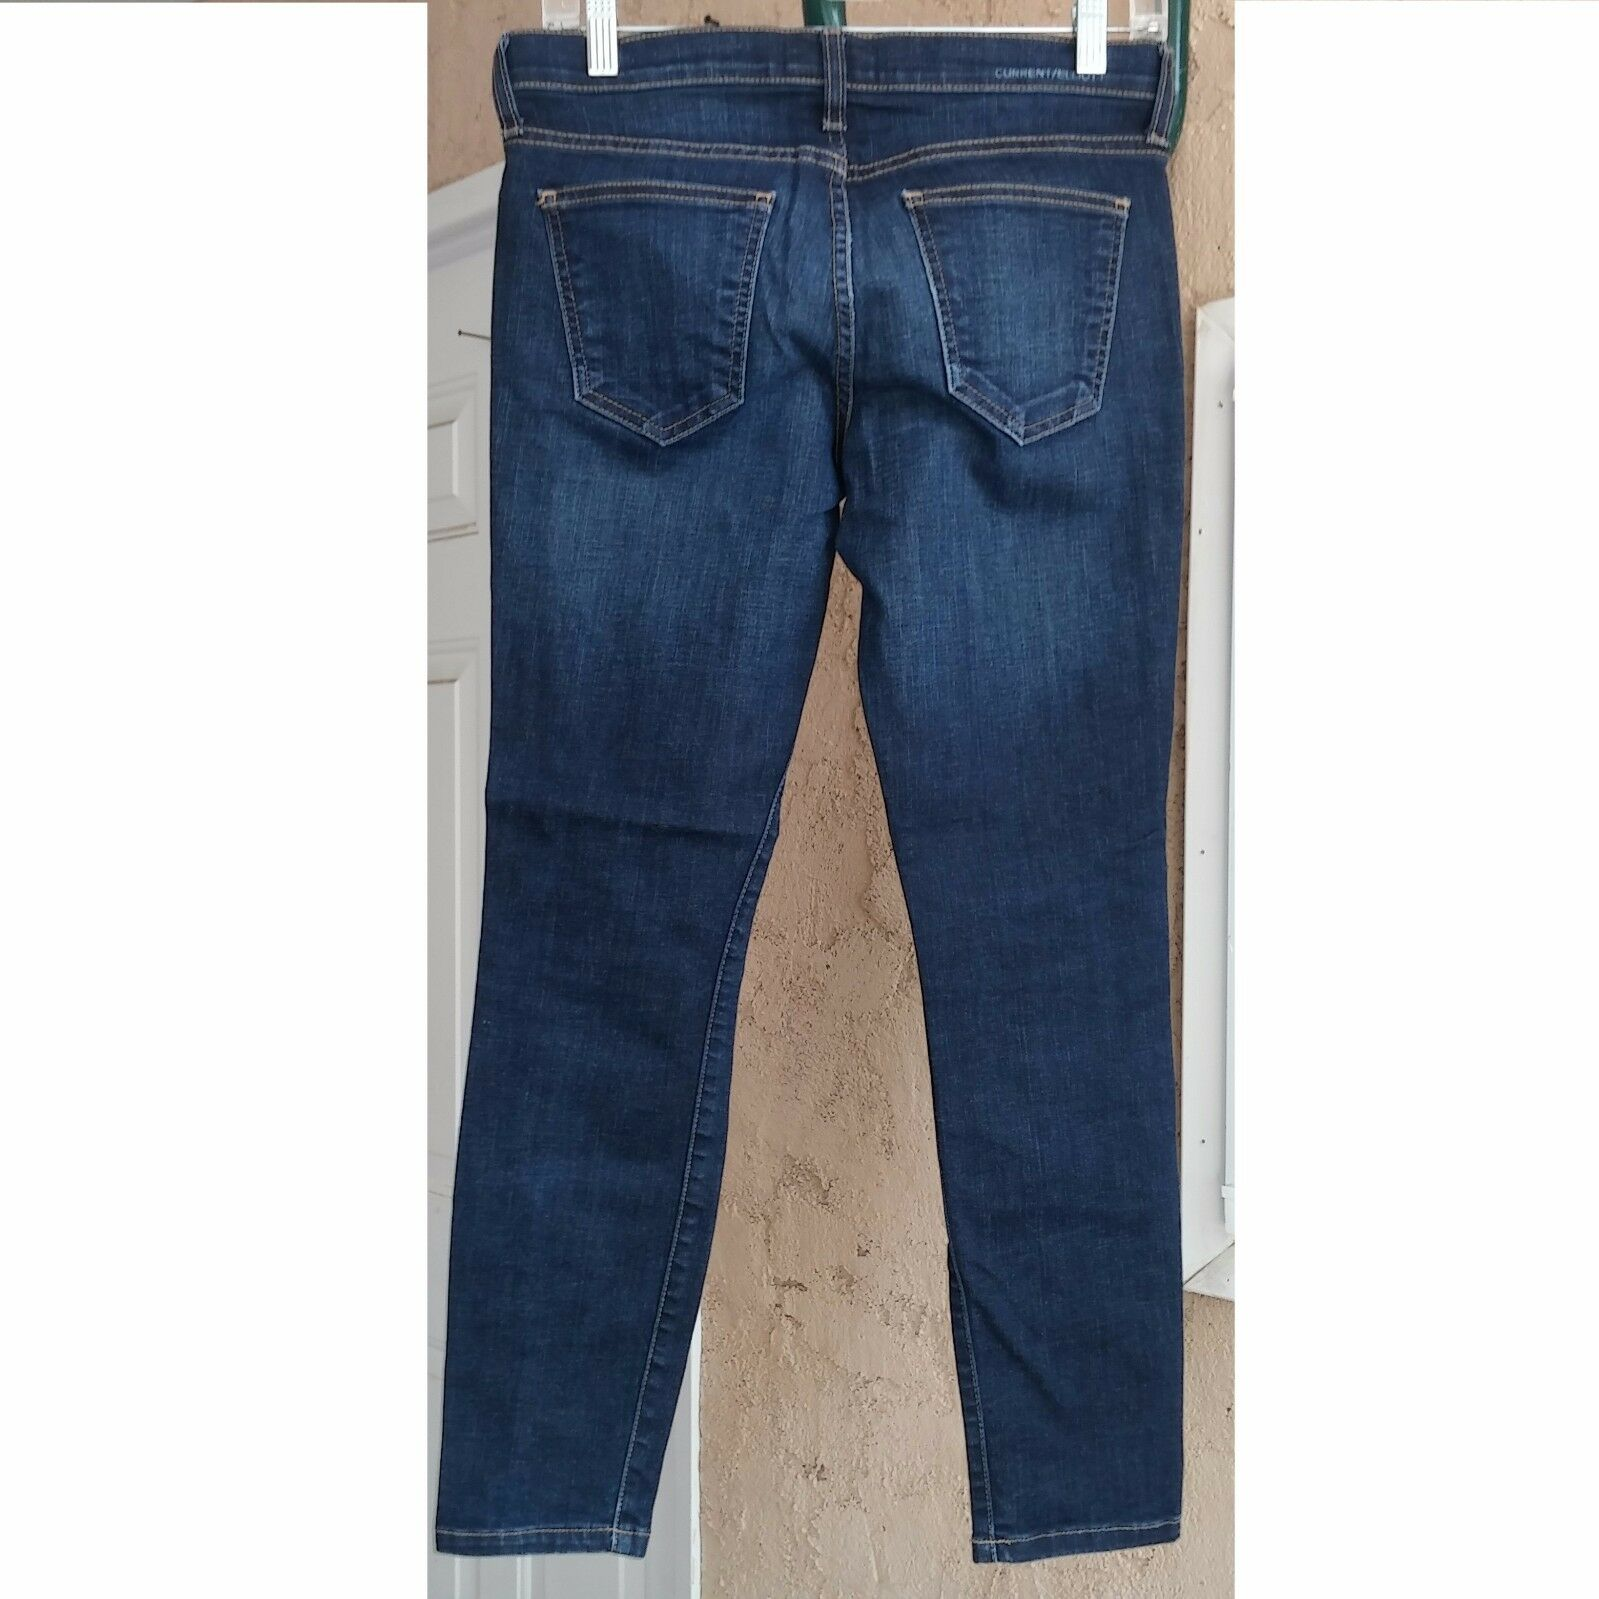 CURRENT ELLIOTT Women's Jeans Cropped THE STILETTO in TAVERN Wash Size 26